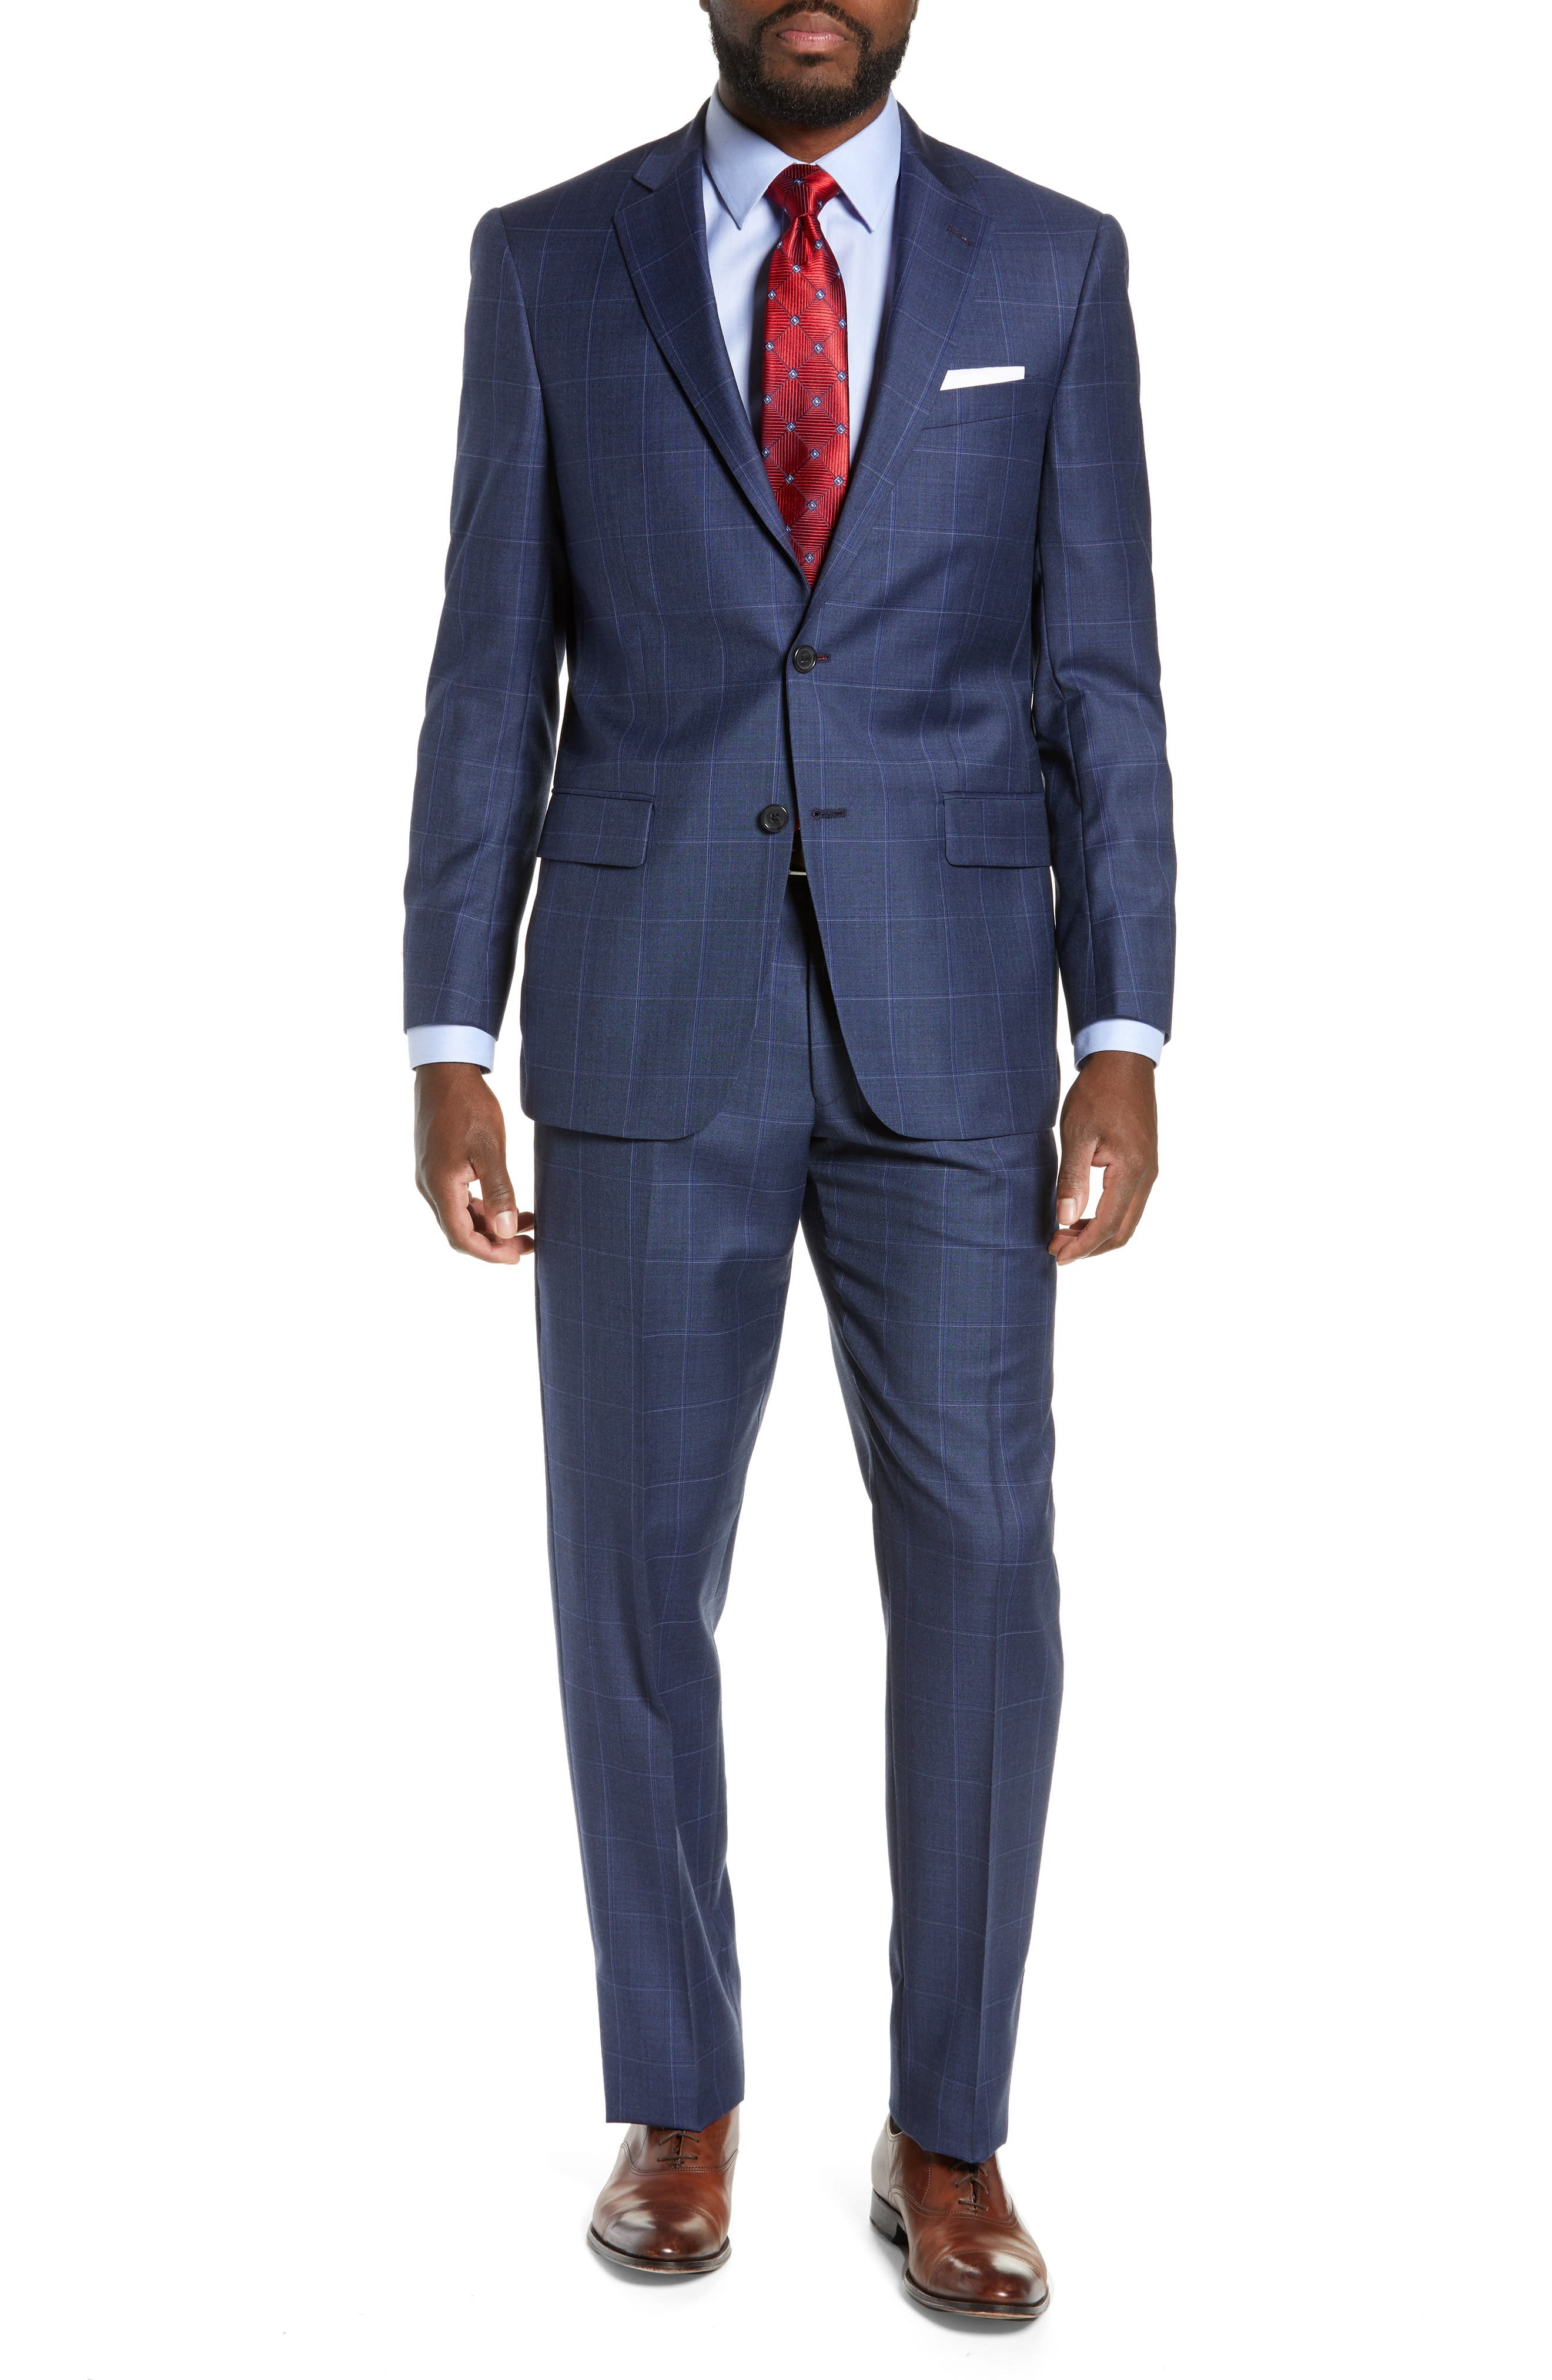 HART SCHAFFNER MARX New York Classic Fit Windowpane Wool Suit in Mid Blue